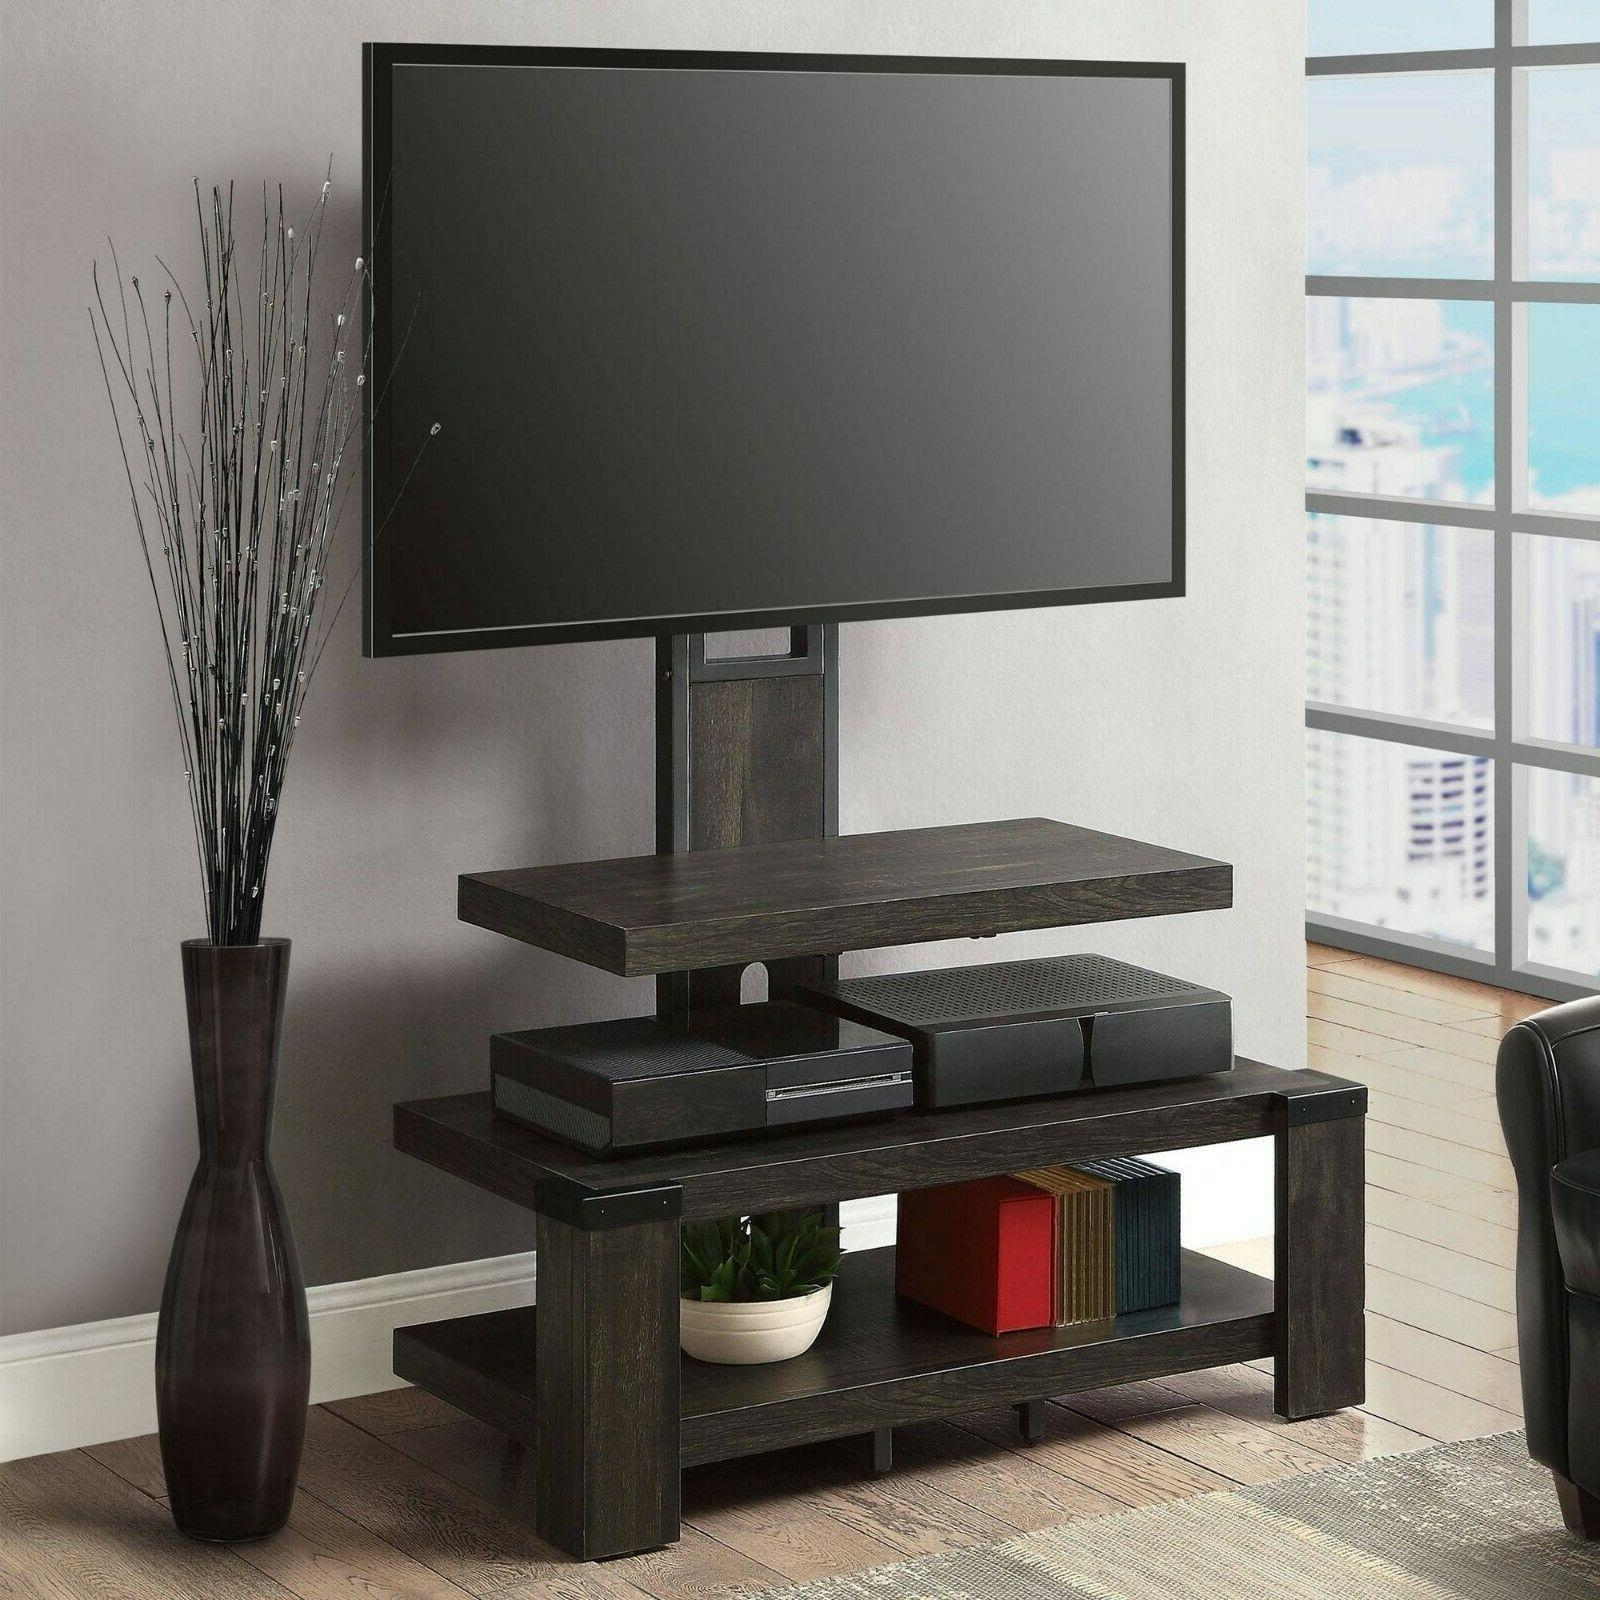 3-in-1 TV Stand 60 inch Flat Screen Entertainment Media Home